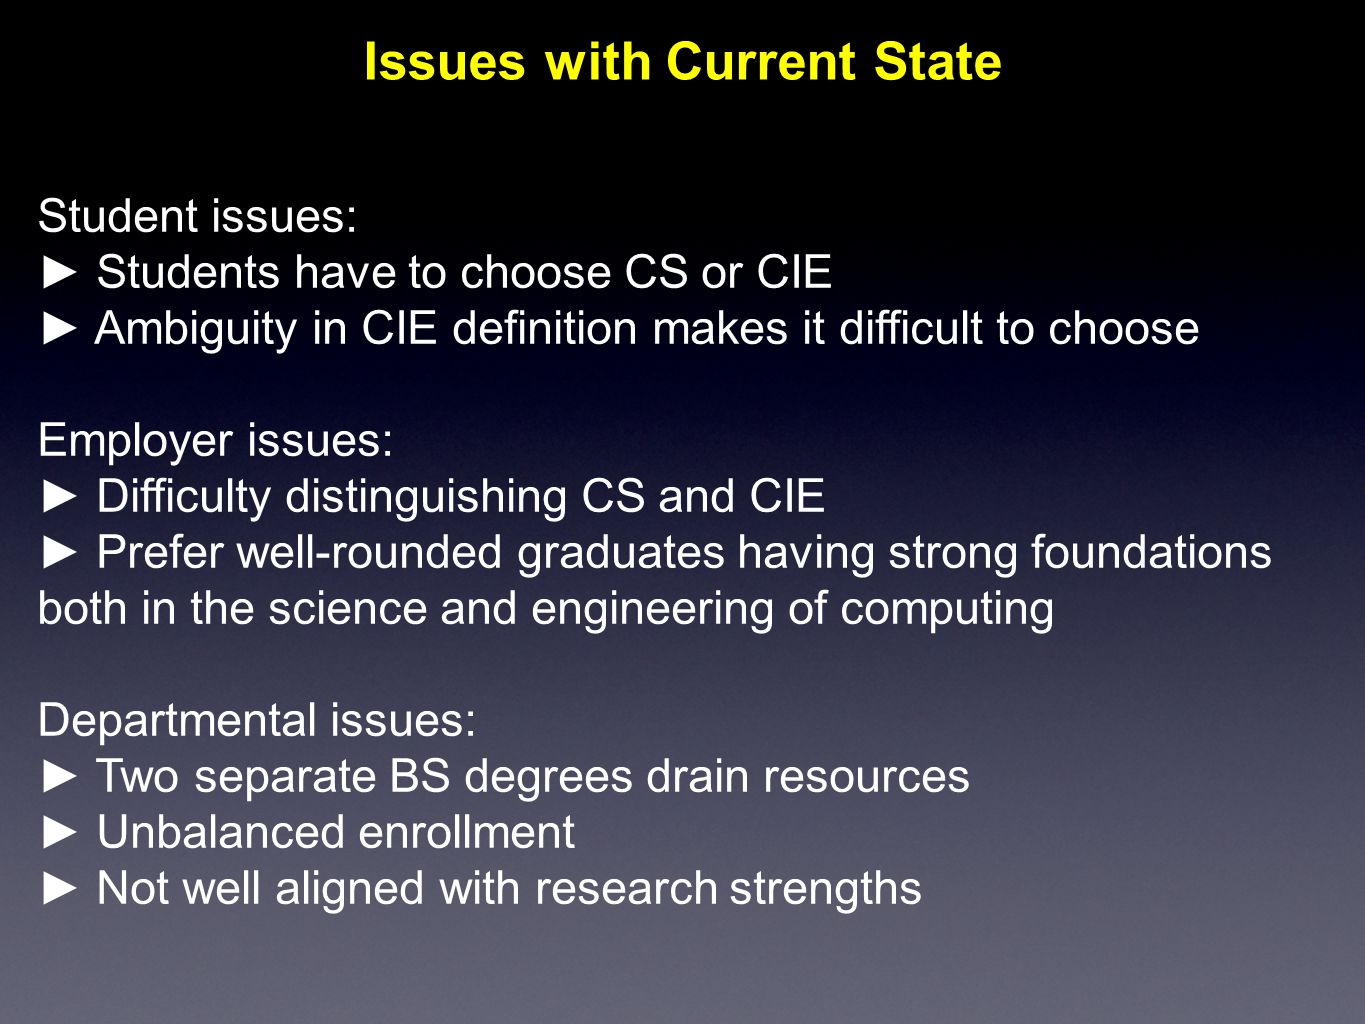 Issues with Current State Student issues: ► Students have to choose CS or CIE ► Ambiguity in CIE definition makes it difficult to choose Employer issues: ► Difficulty distinguishing CS and CIE ► Prefer well-rounded graduates having strong foundations both in the science and engineering of computing Departmental issues: ► Two separate BS degrees drain resources ► Unbalanced enrollment ► Not well aligned with research strengths